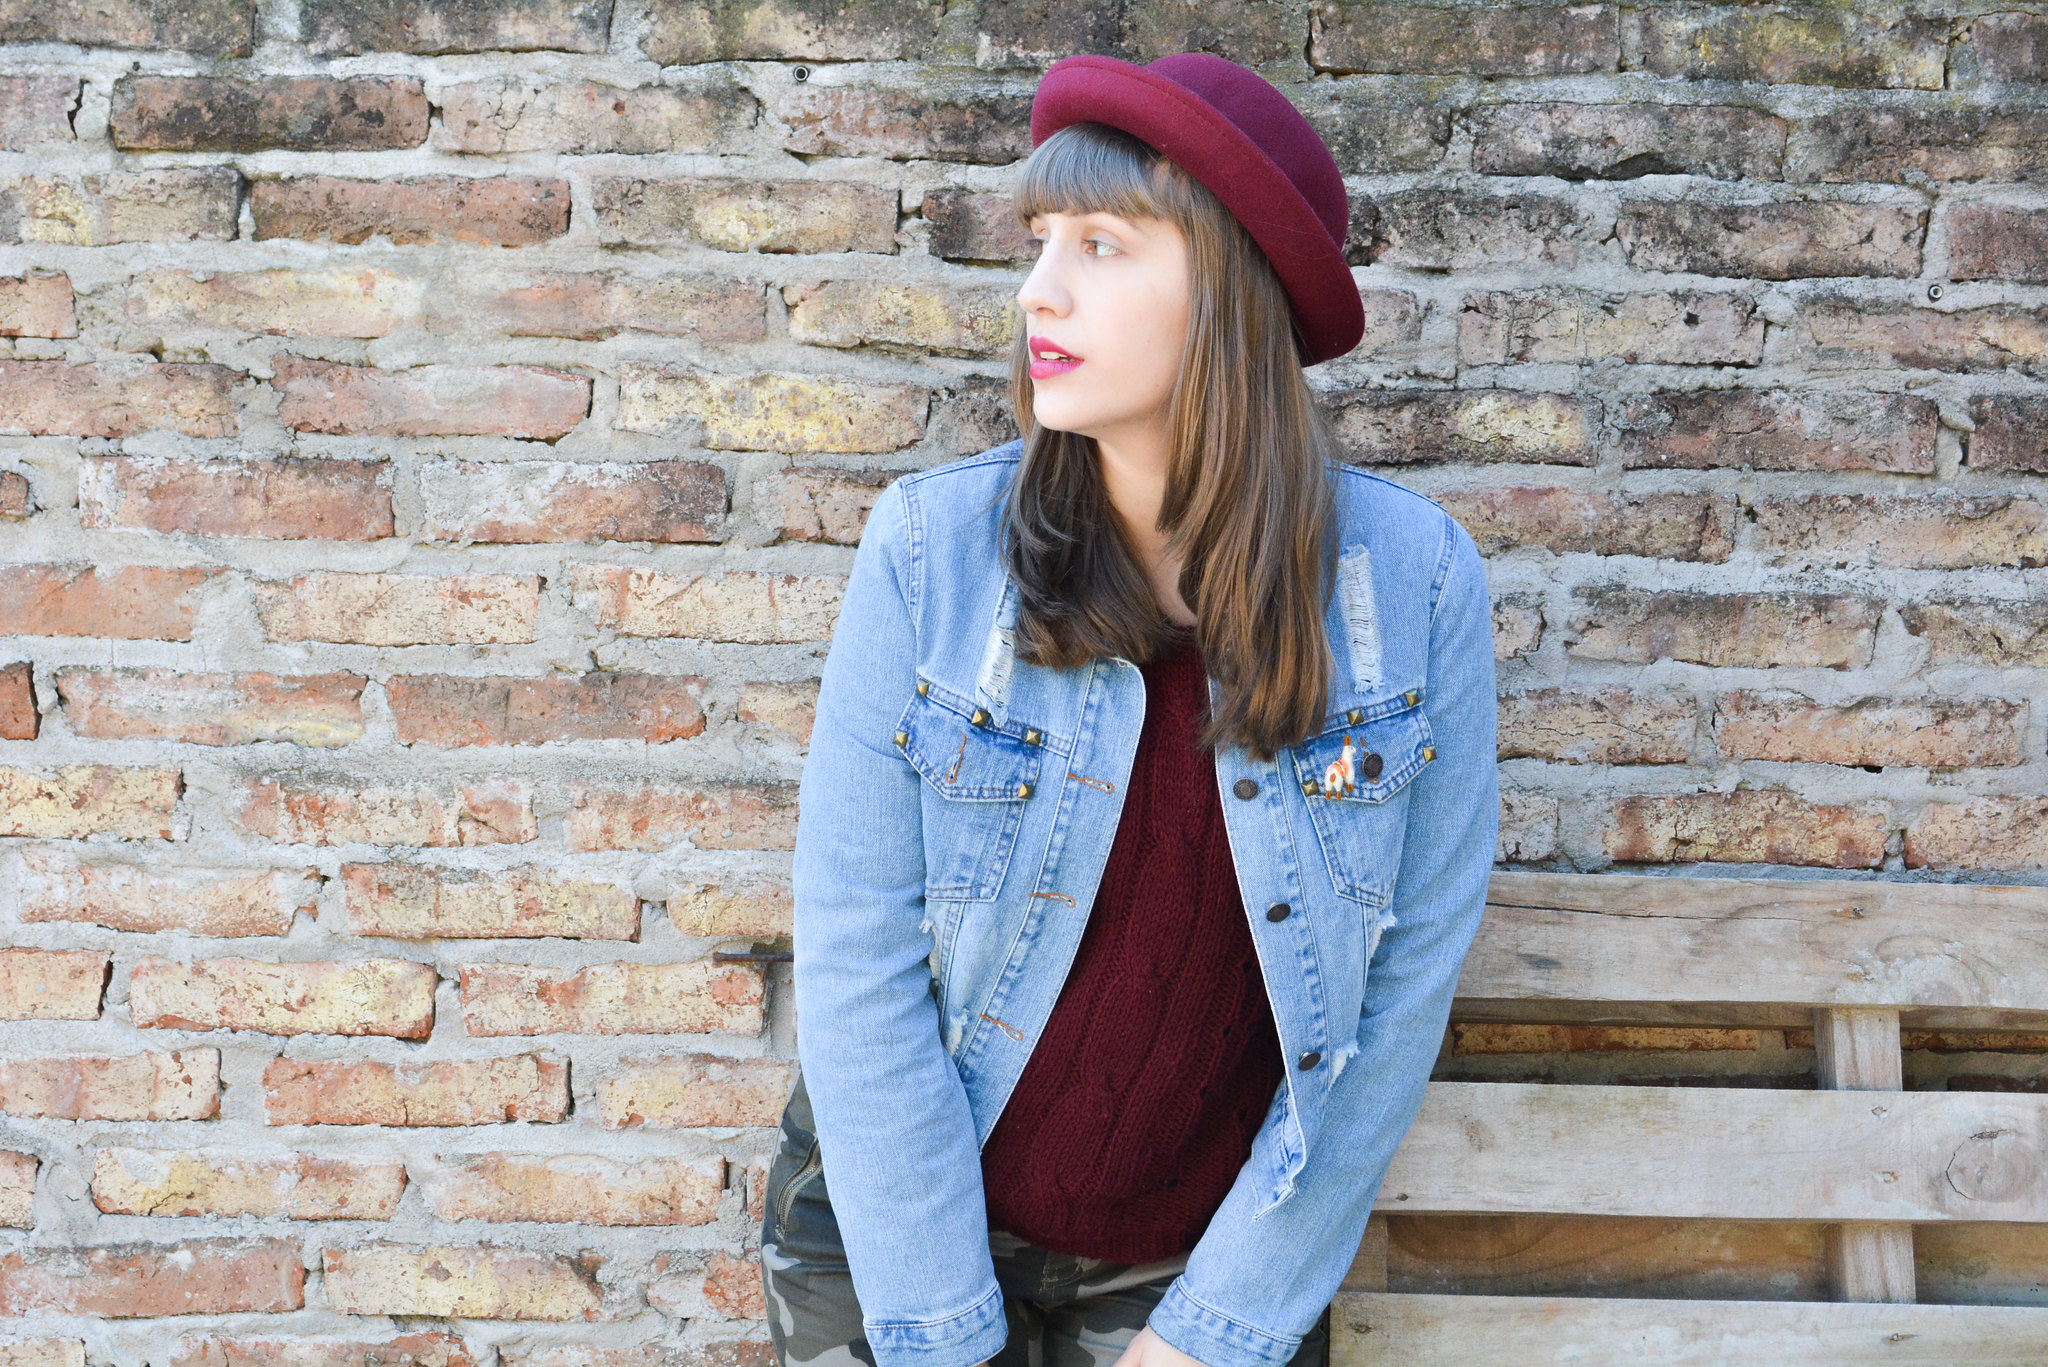 fashion, fashionista, moda, blogger argentina, fashion blogger, fashion blogger argentina, blogger, beauty blogger, ouytfit, ootd, coordinate, conjunto, look, what i wore